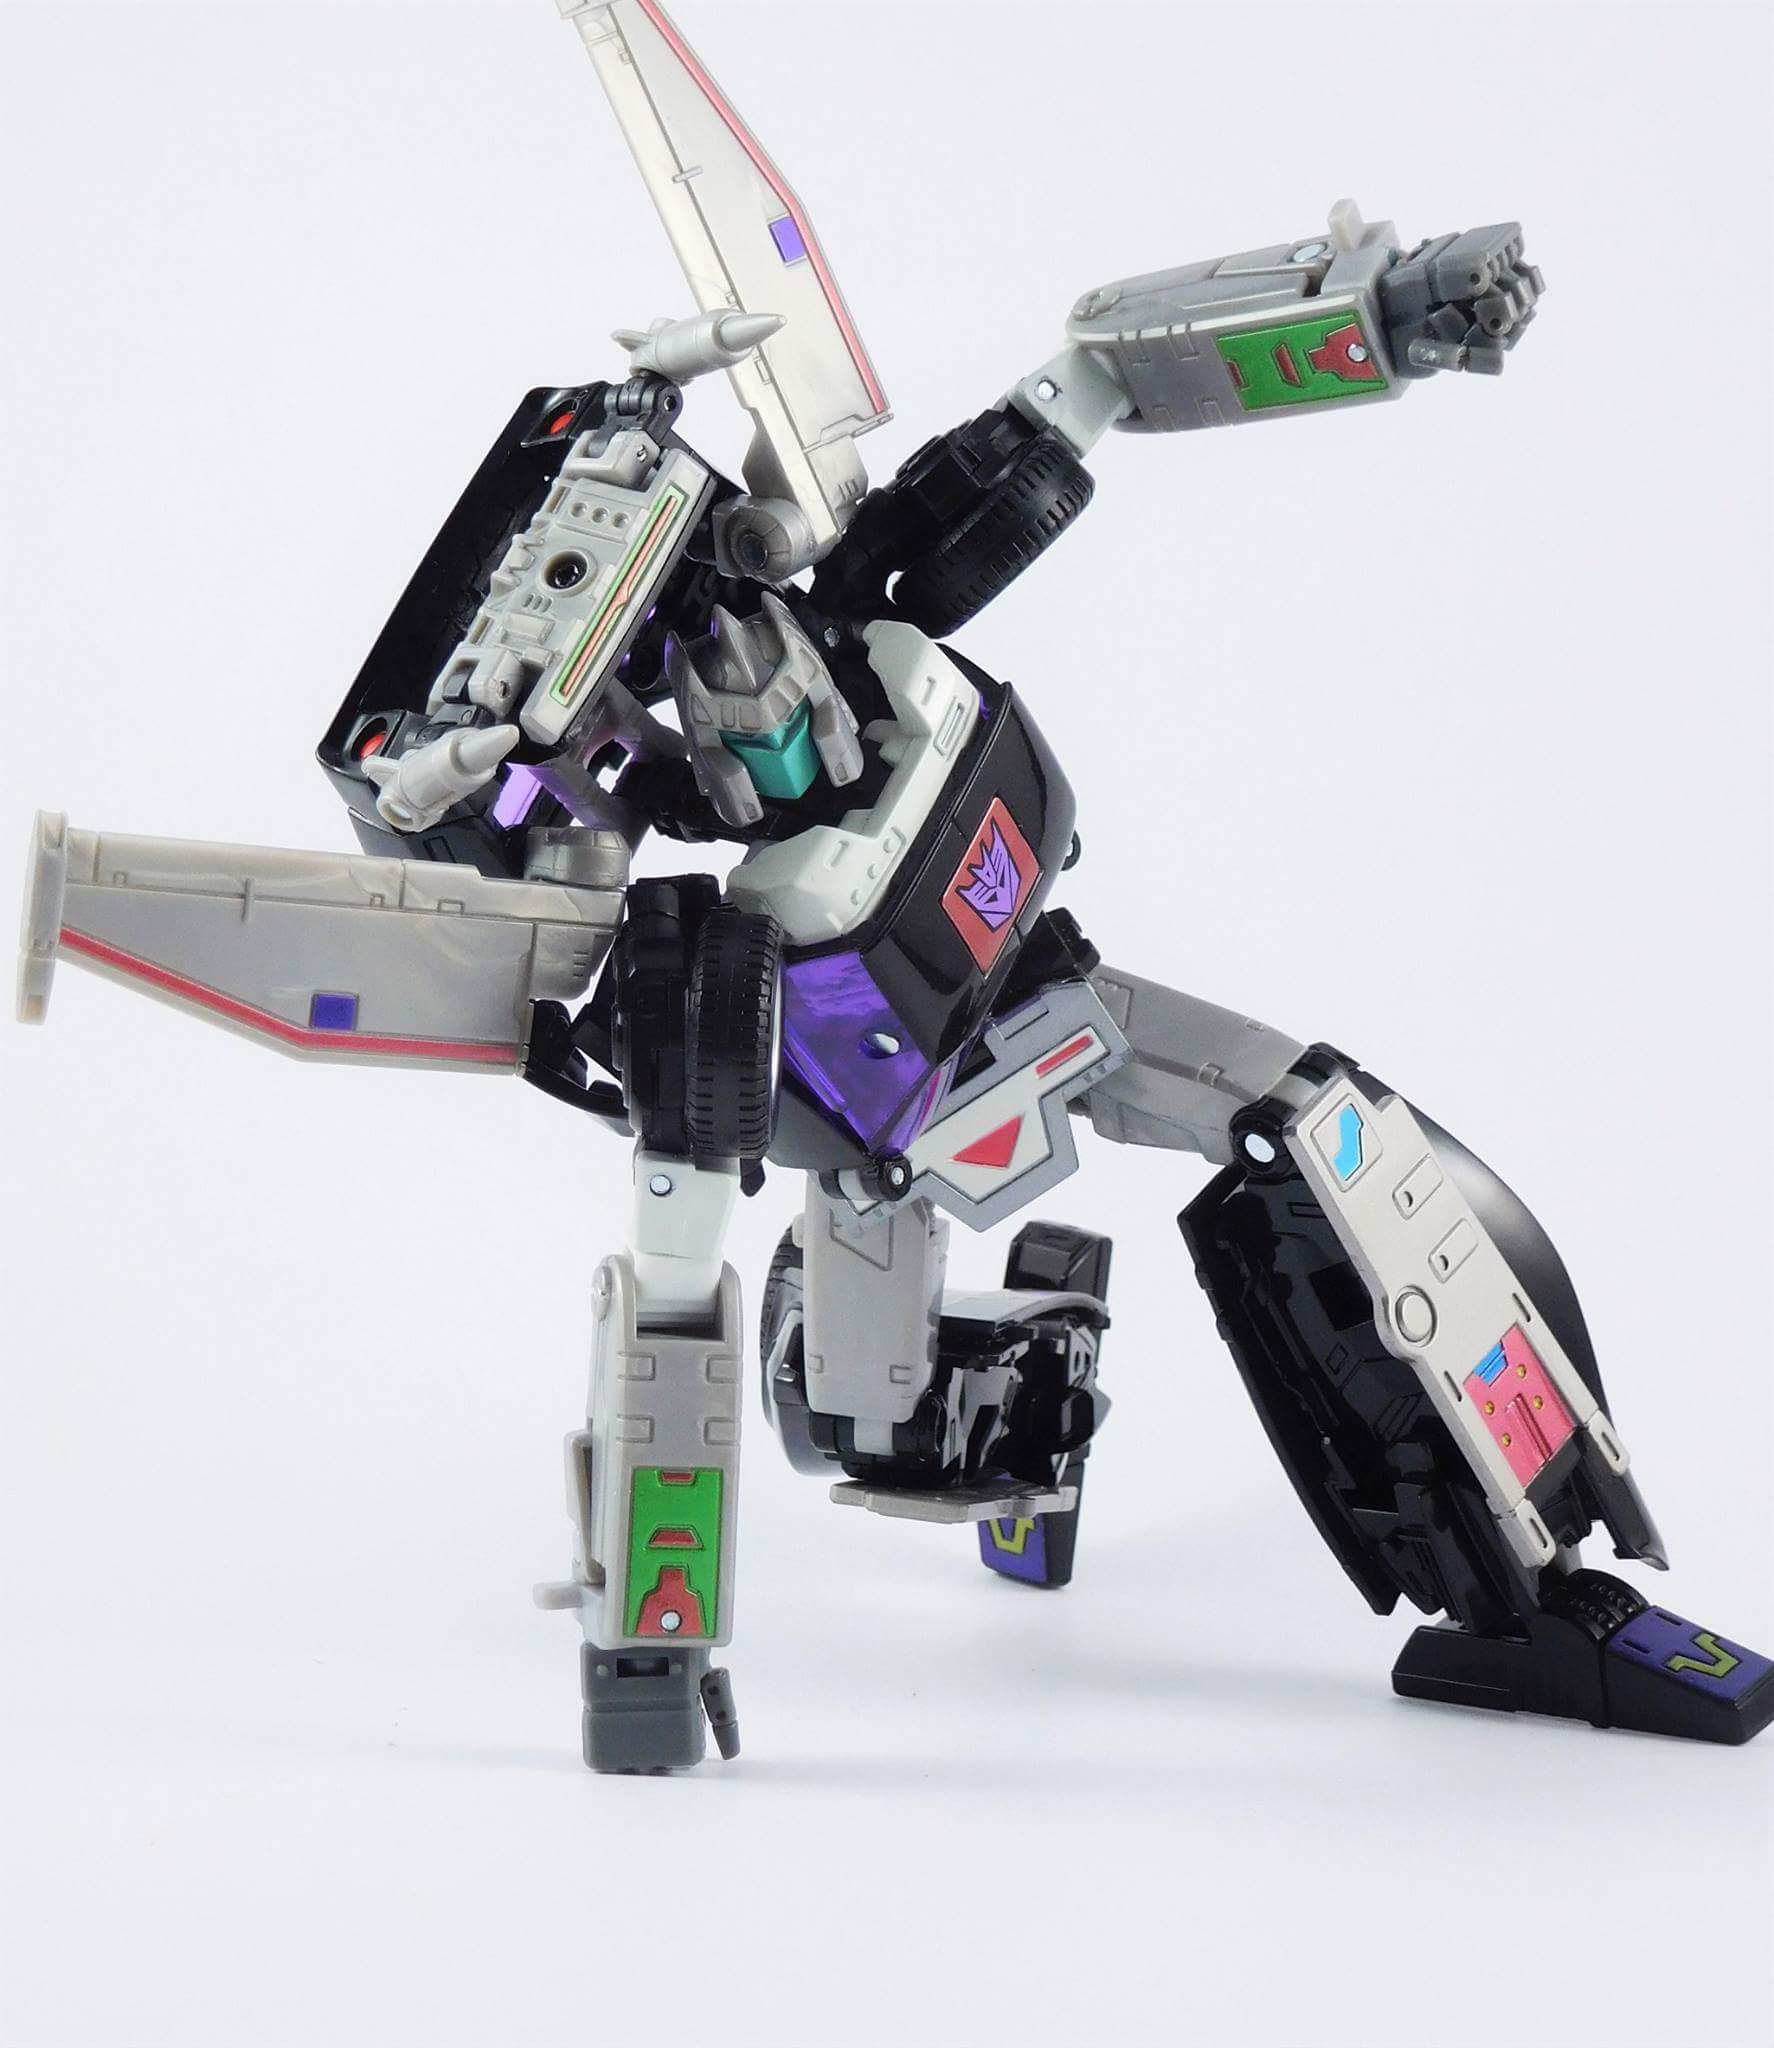 [Masterpiece] MP-25L LoudPedal (Rouge) + MP-26 Road Rage (Noir) ― aka Tracks/Le Sillage Diaclone - Page 3 9YbohKfw